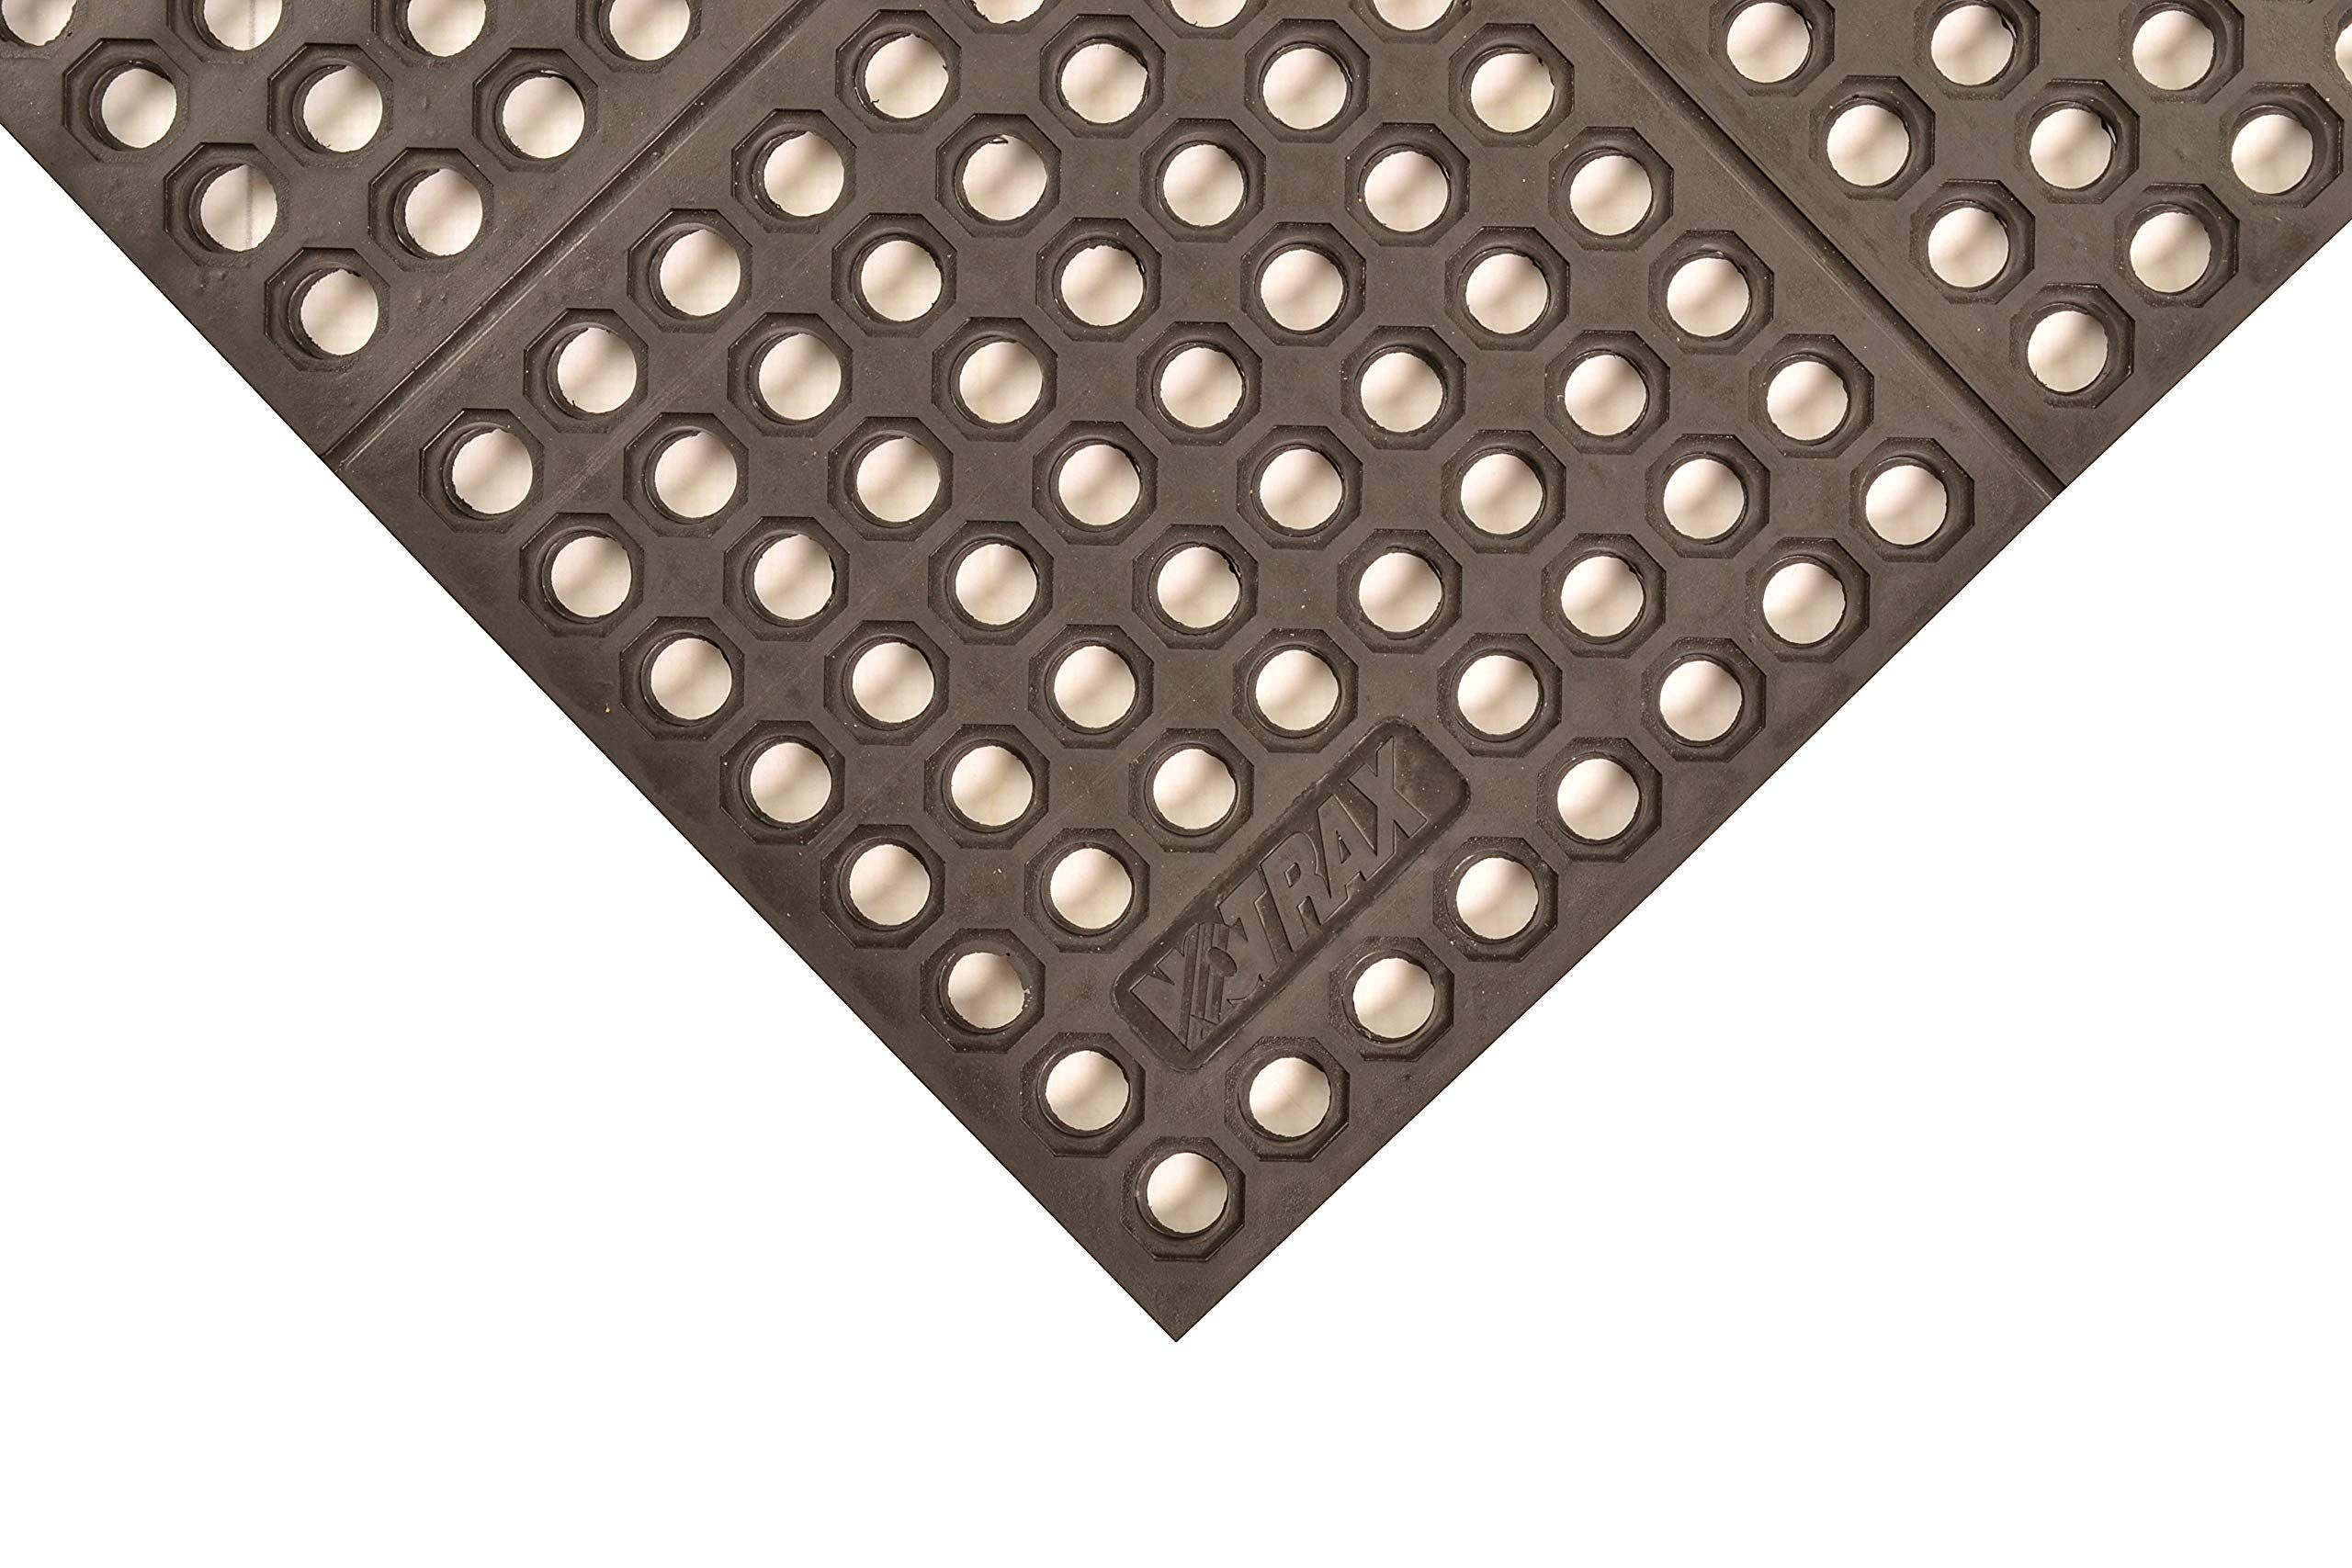 Notrax T56 Ultra Mat Max Rubber Safety Anti Fatigue Mat For Wet Or Greasy Areas 3 Width X 3 Length X 3 4 Thickness Black Re Anti Fatigue Mat Wet Greasy